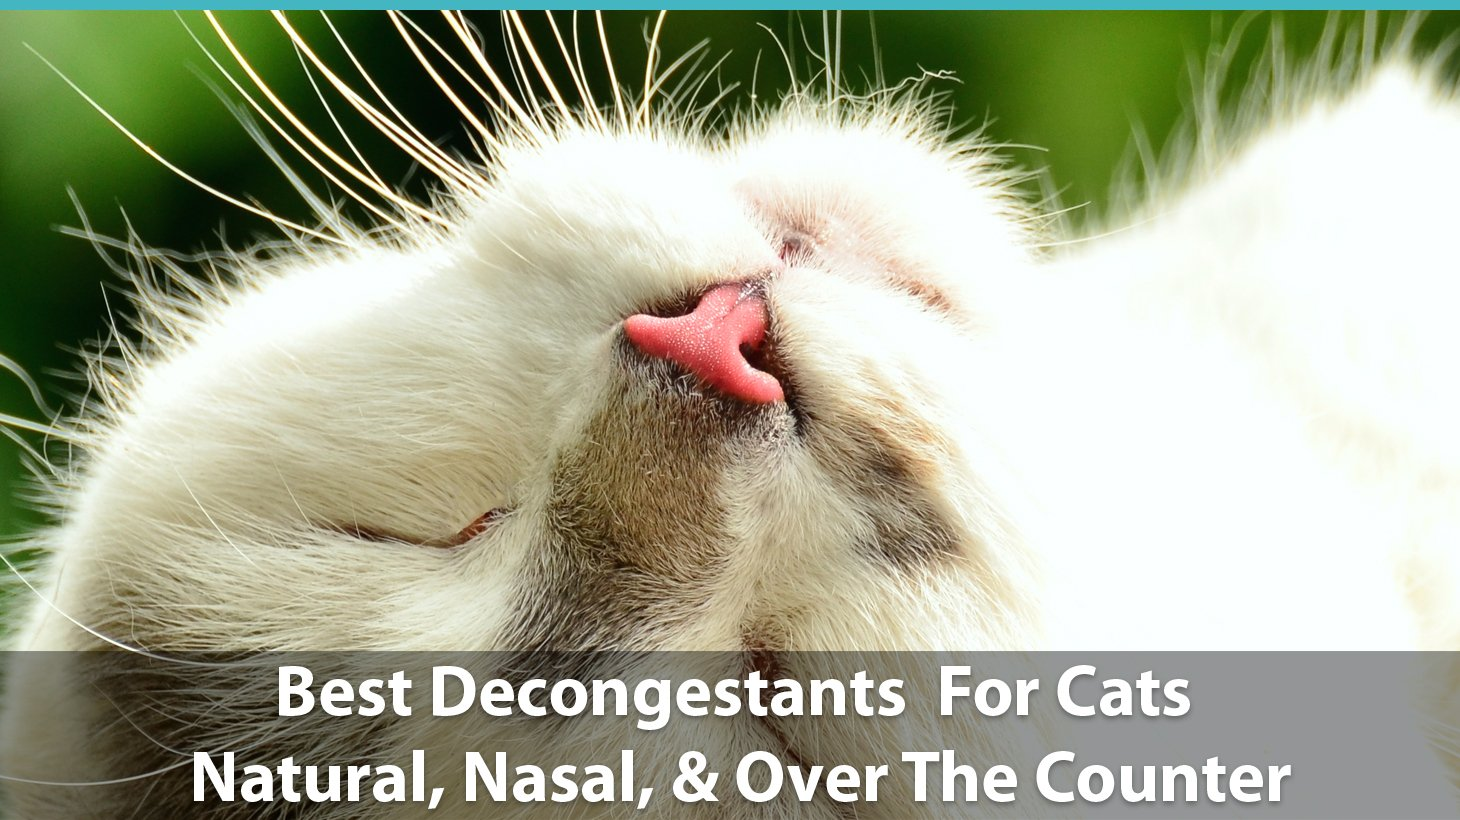 cats decongestants counter nasal natural catological